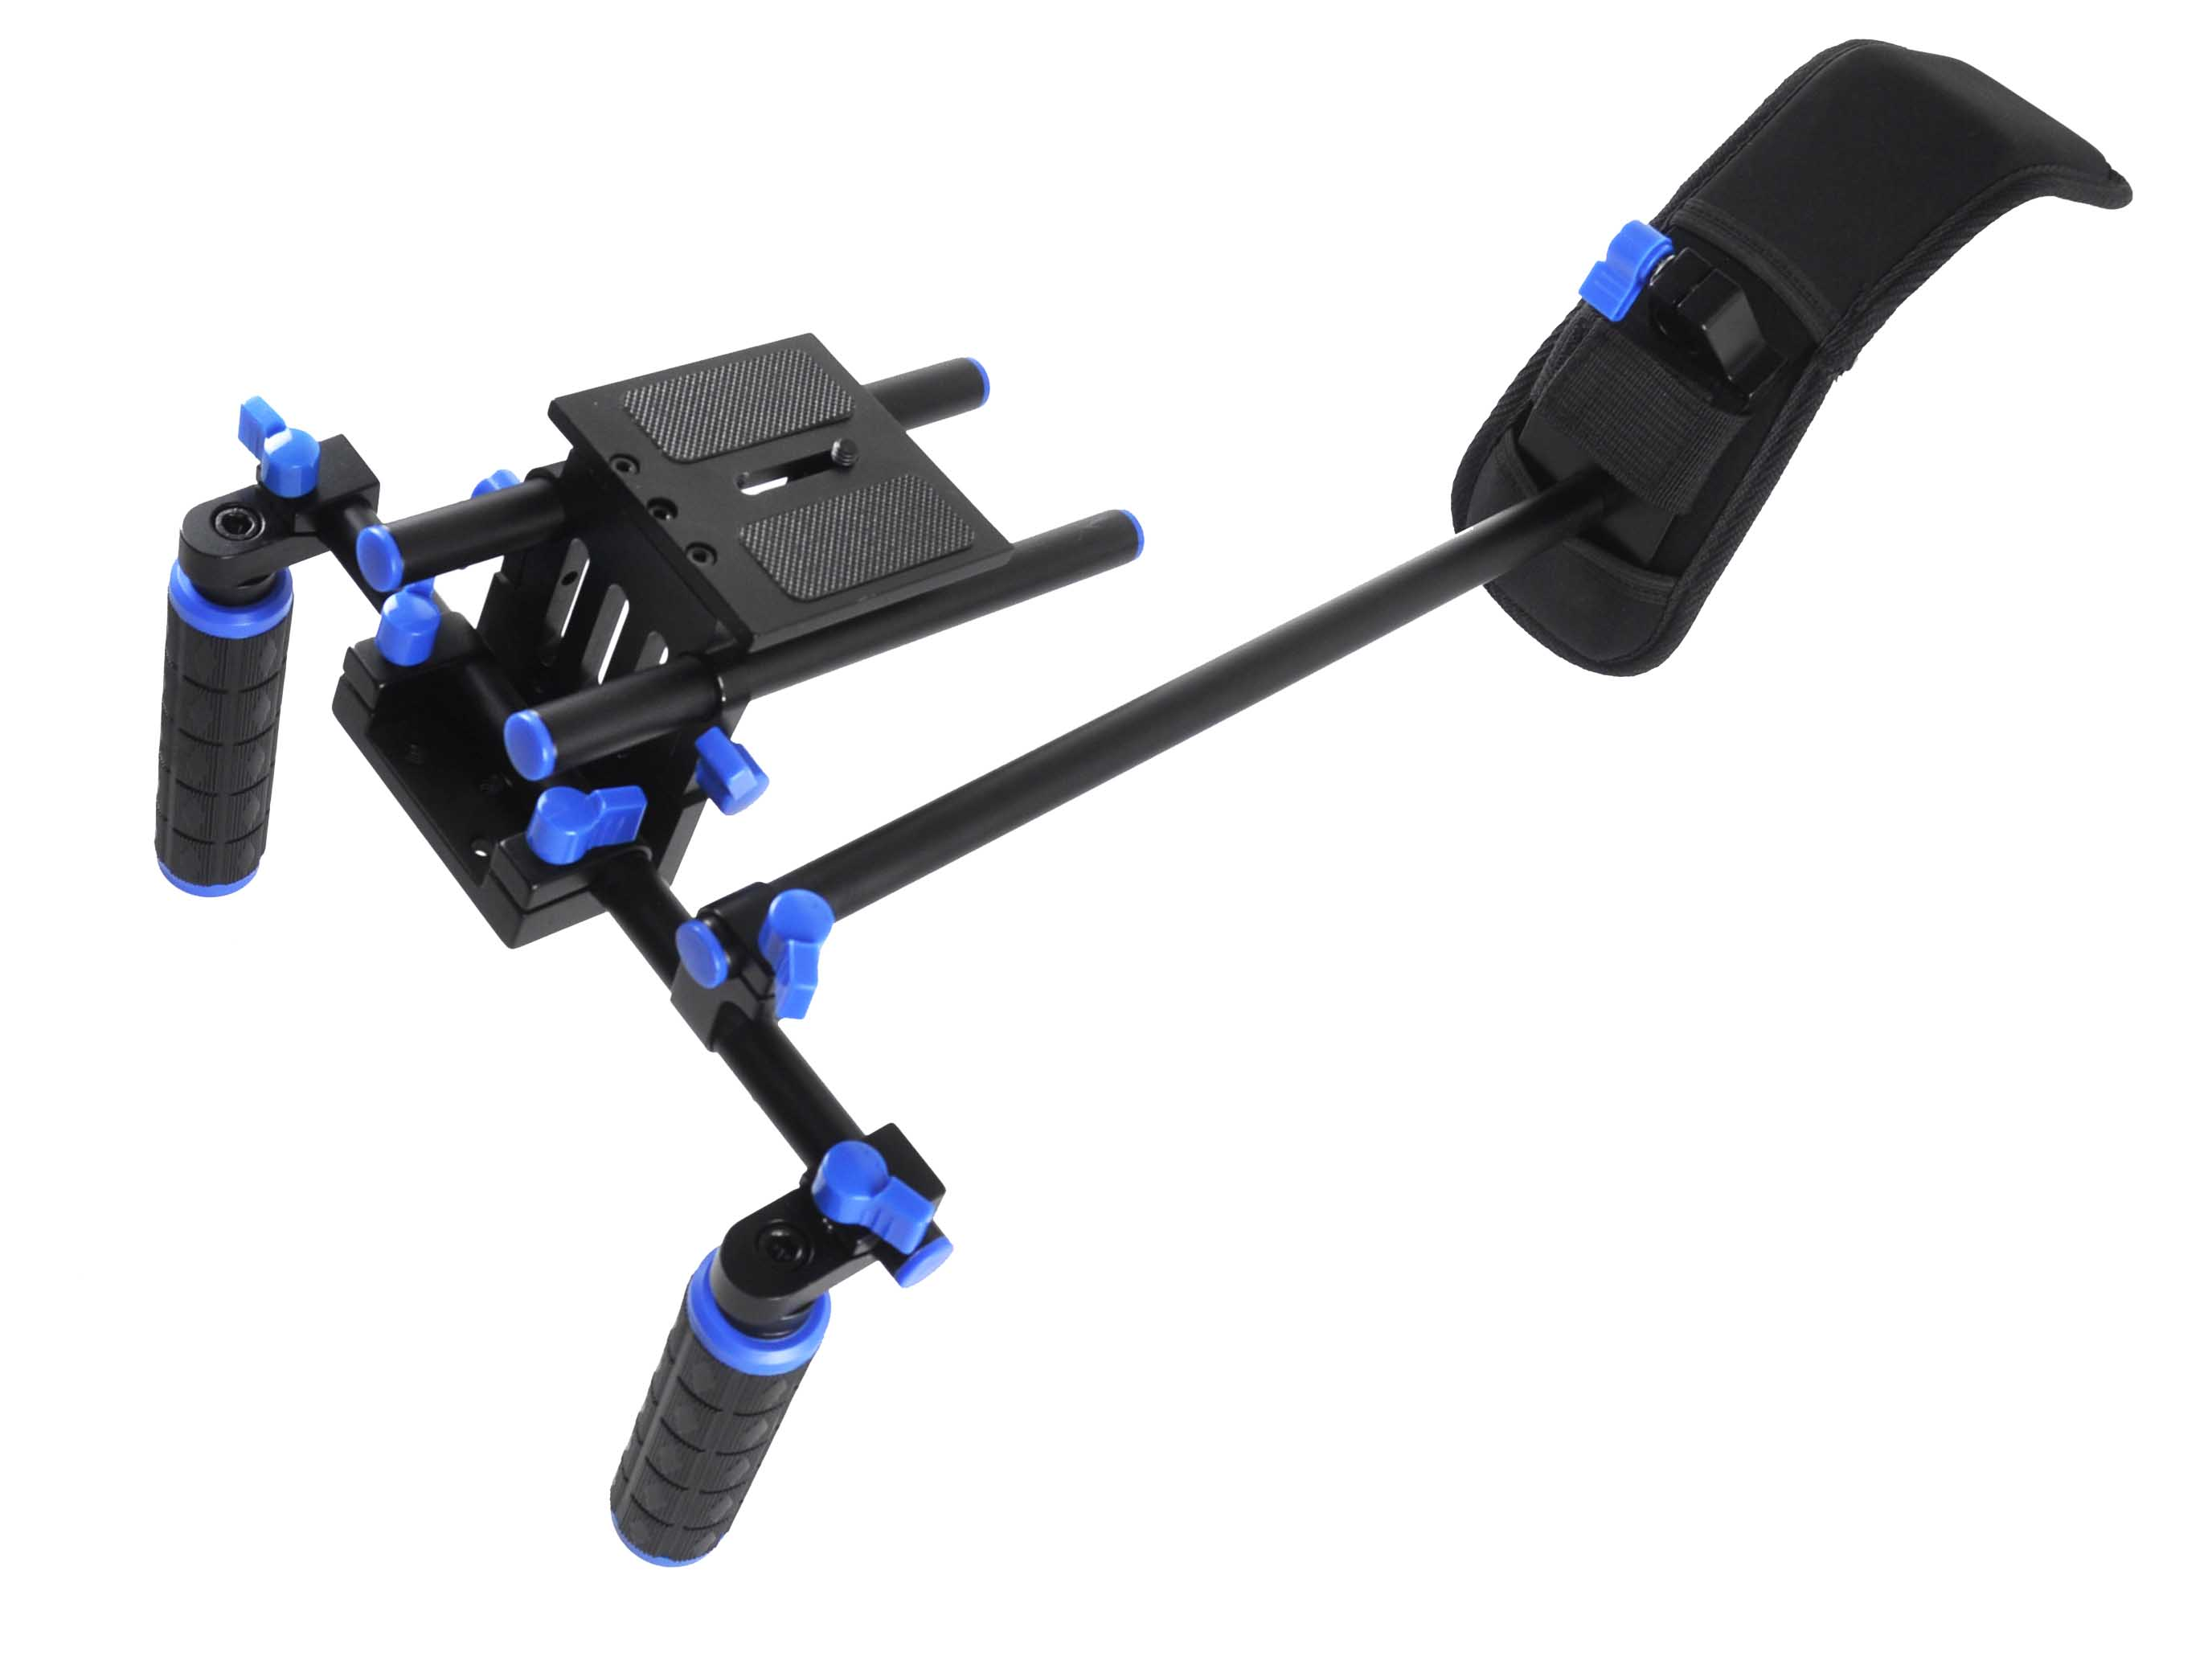 CAMERA BRACKET 02 FOR DSLR RIG /PHOTOGRAPHIC SHOULDER MOUNT WITH FOLLOW FOCUS